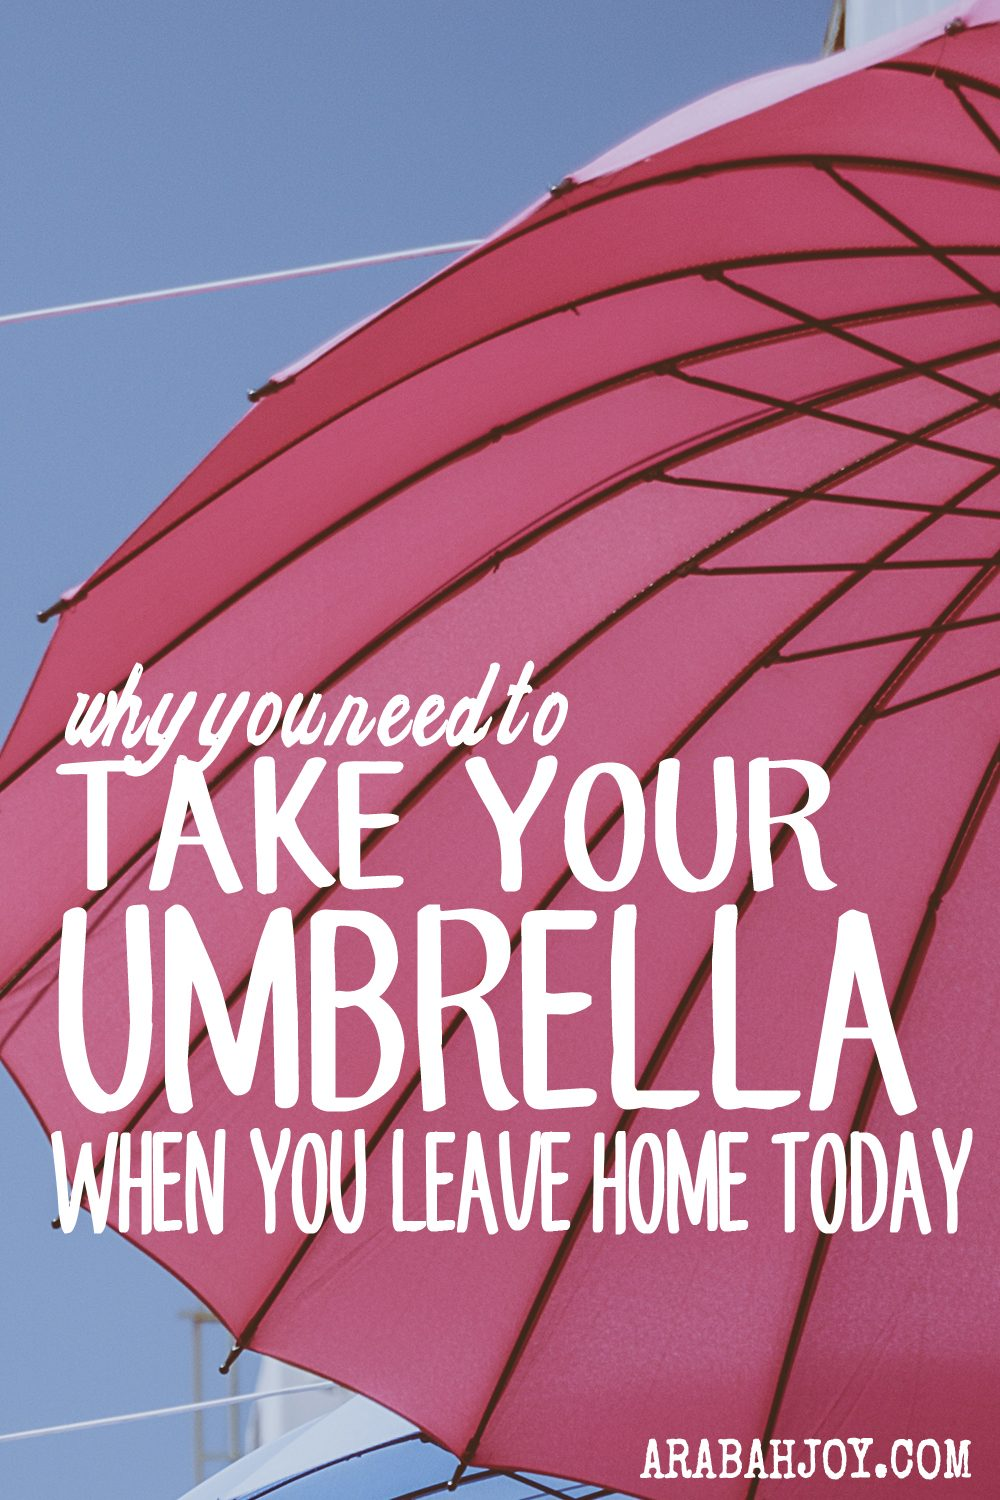 Why You Need To Take Your Umbrella When You Leave Home Today